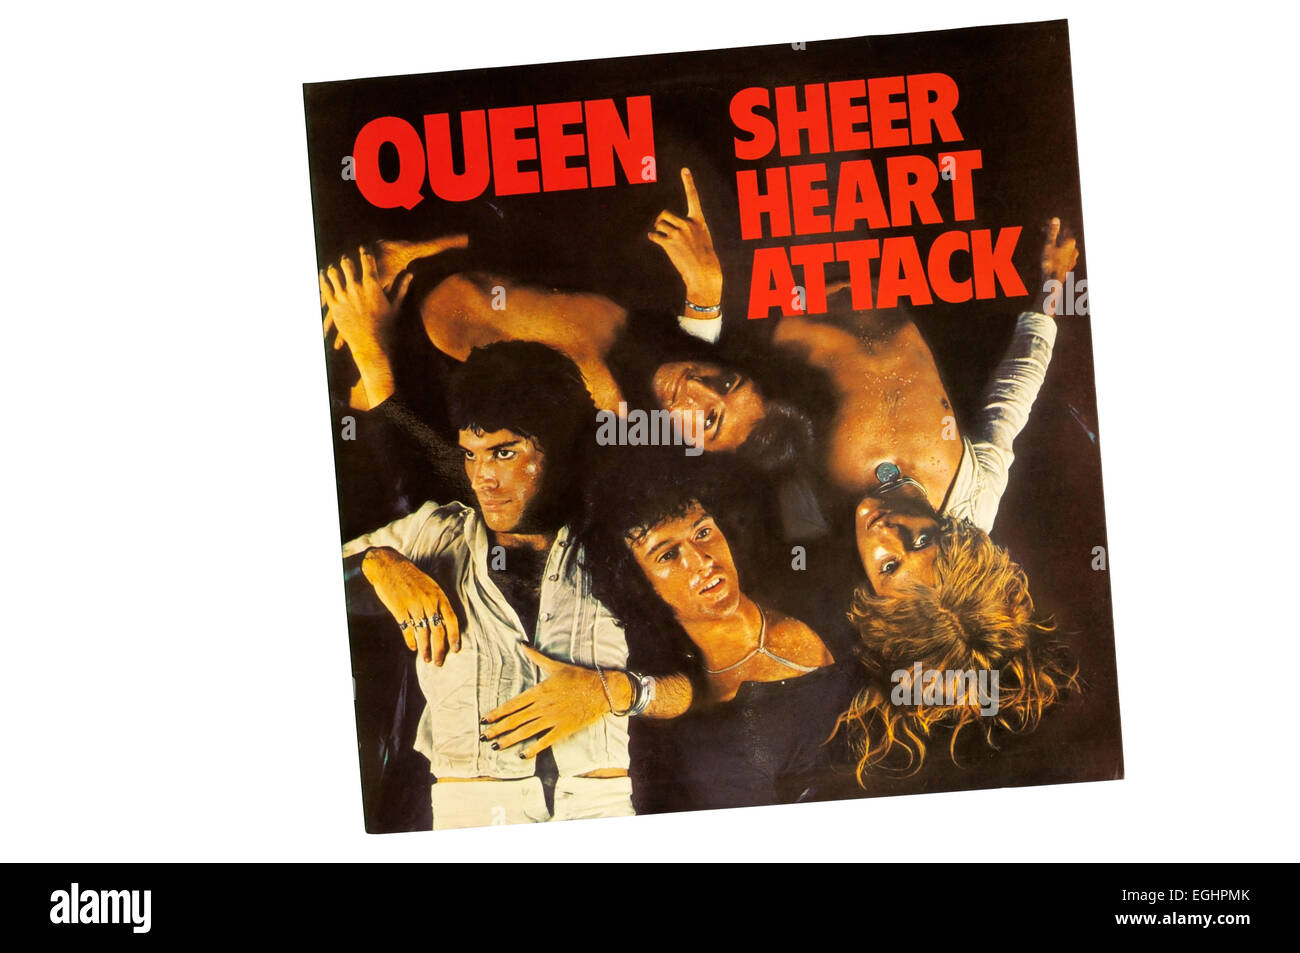 Sheer Heart Attack was the third album by British rock band